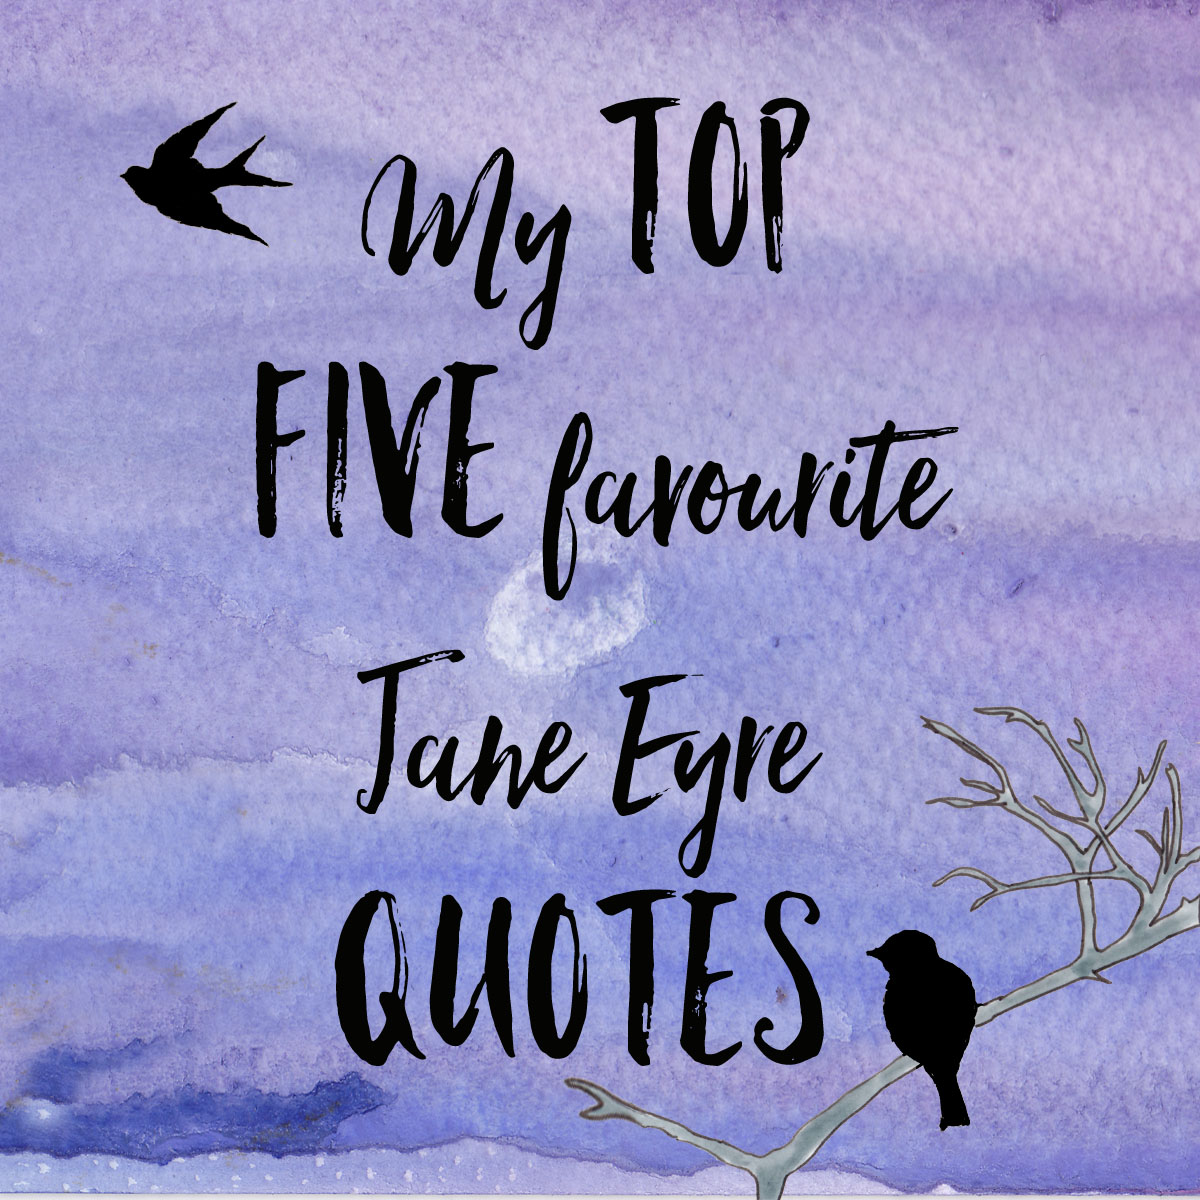 my top five favourite jane eyre quotes